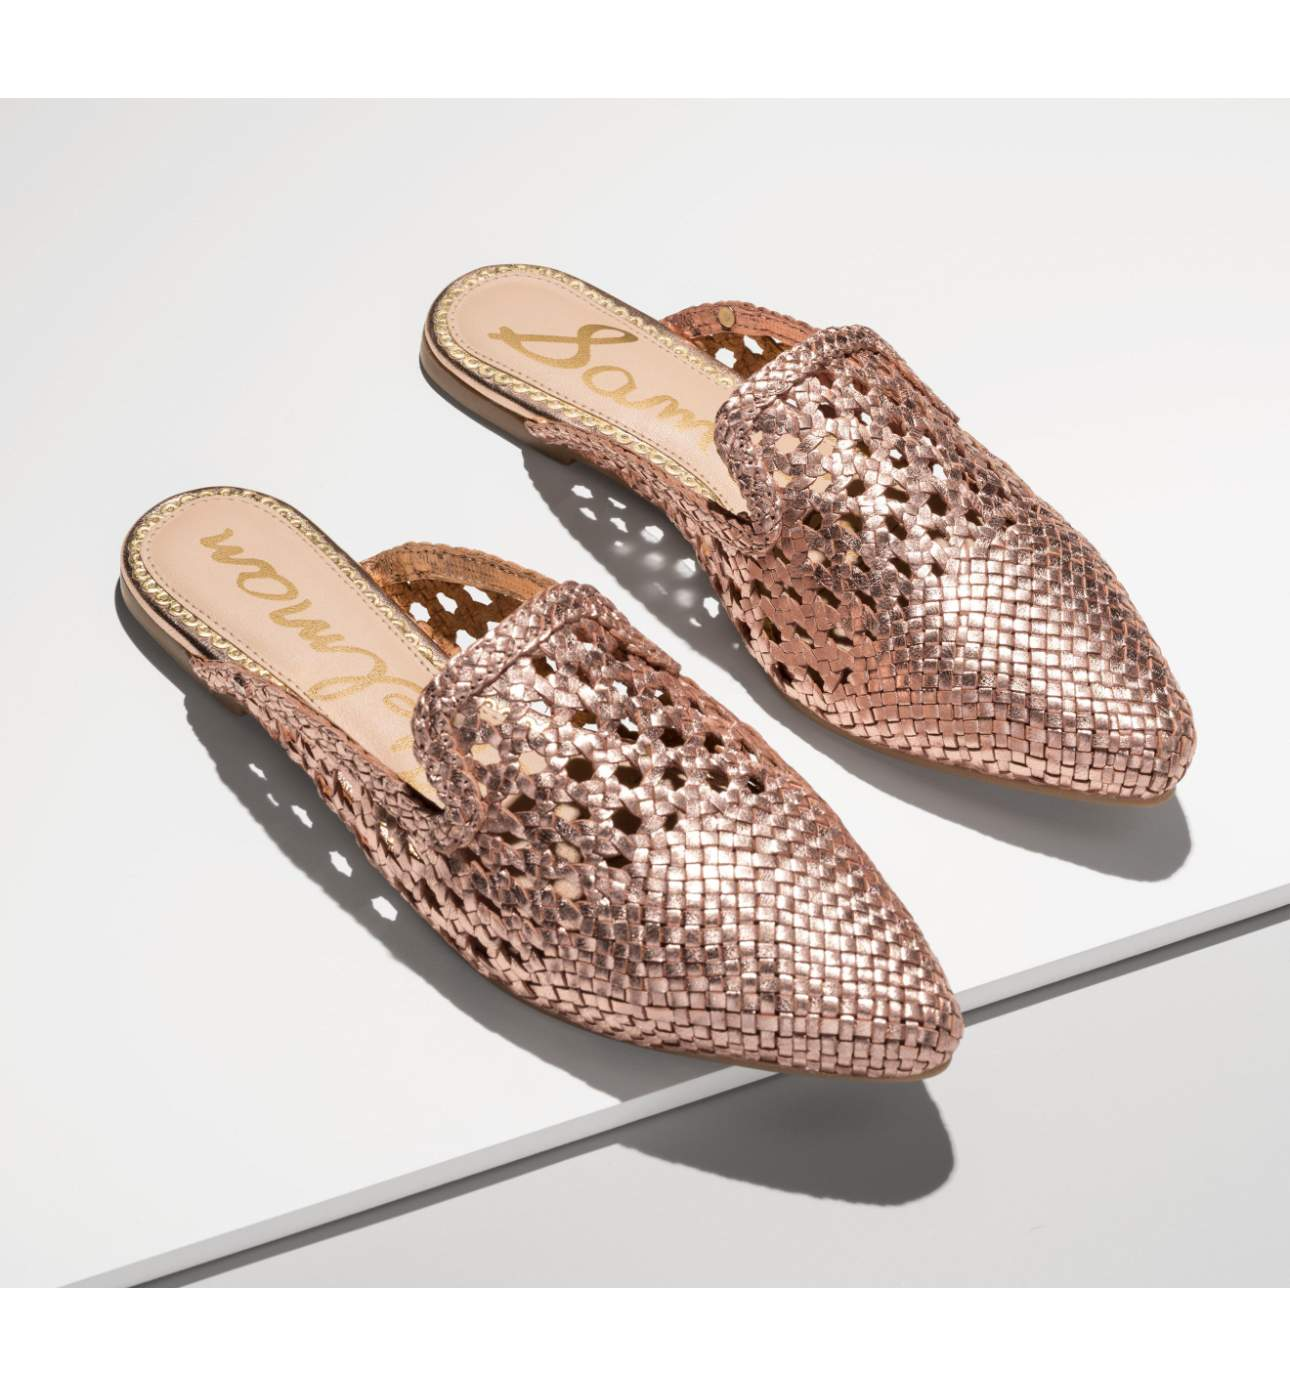 <p>Metalic shades scream rock n roll.{&nbsp;} You'll see mules marching all over the streets of Seattle this Spring.{&nbsp;} Perfect for tackling those big Seattle hills downtown. Navya Woven Loafer Mule - $89.95. (Image: Nordstrom){&nbsp;}</p><p></p>